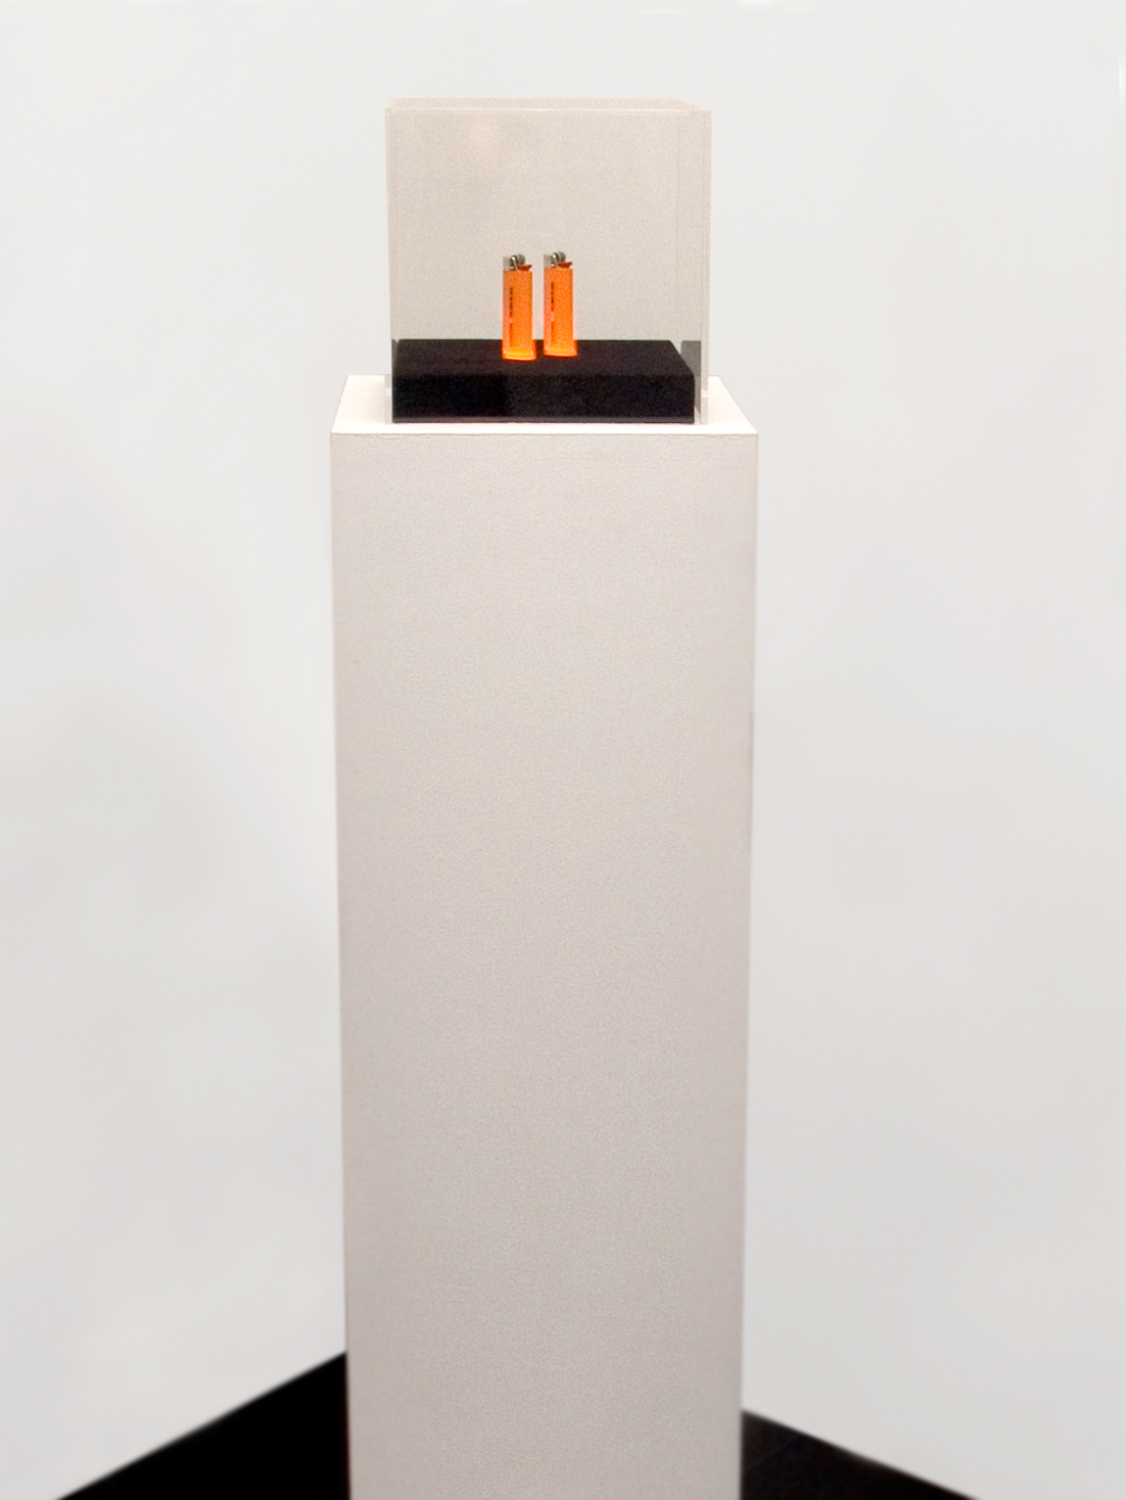 «Out of context, inside the market», 2005, Fetish lighters 1,000,000 euros